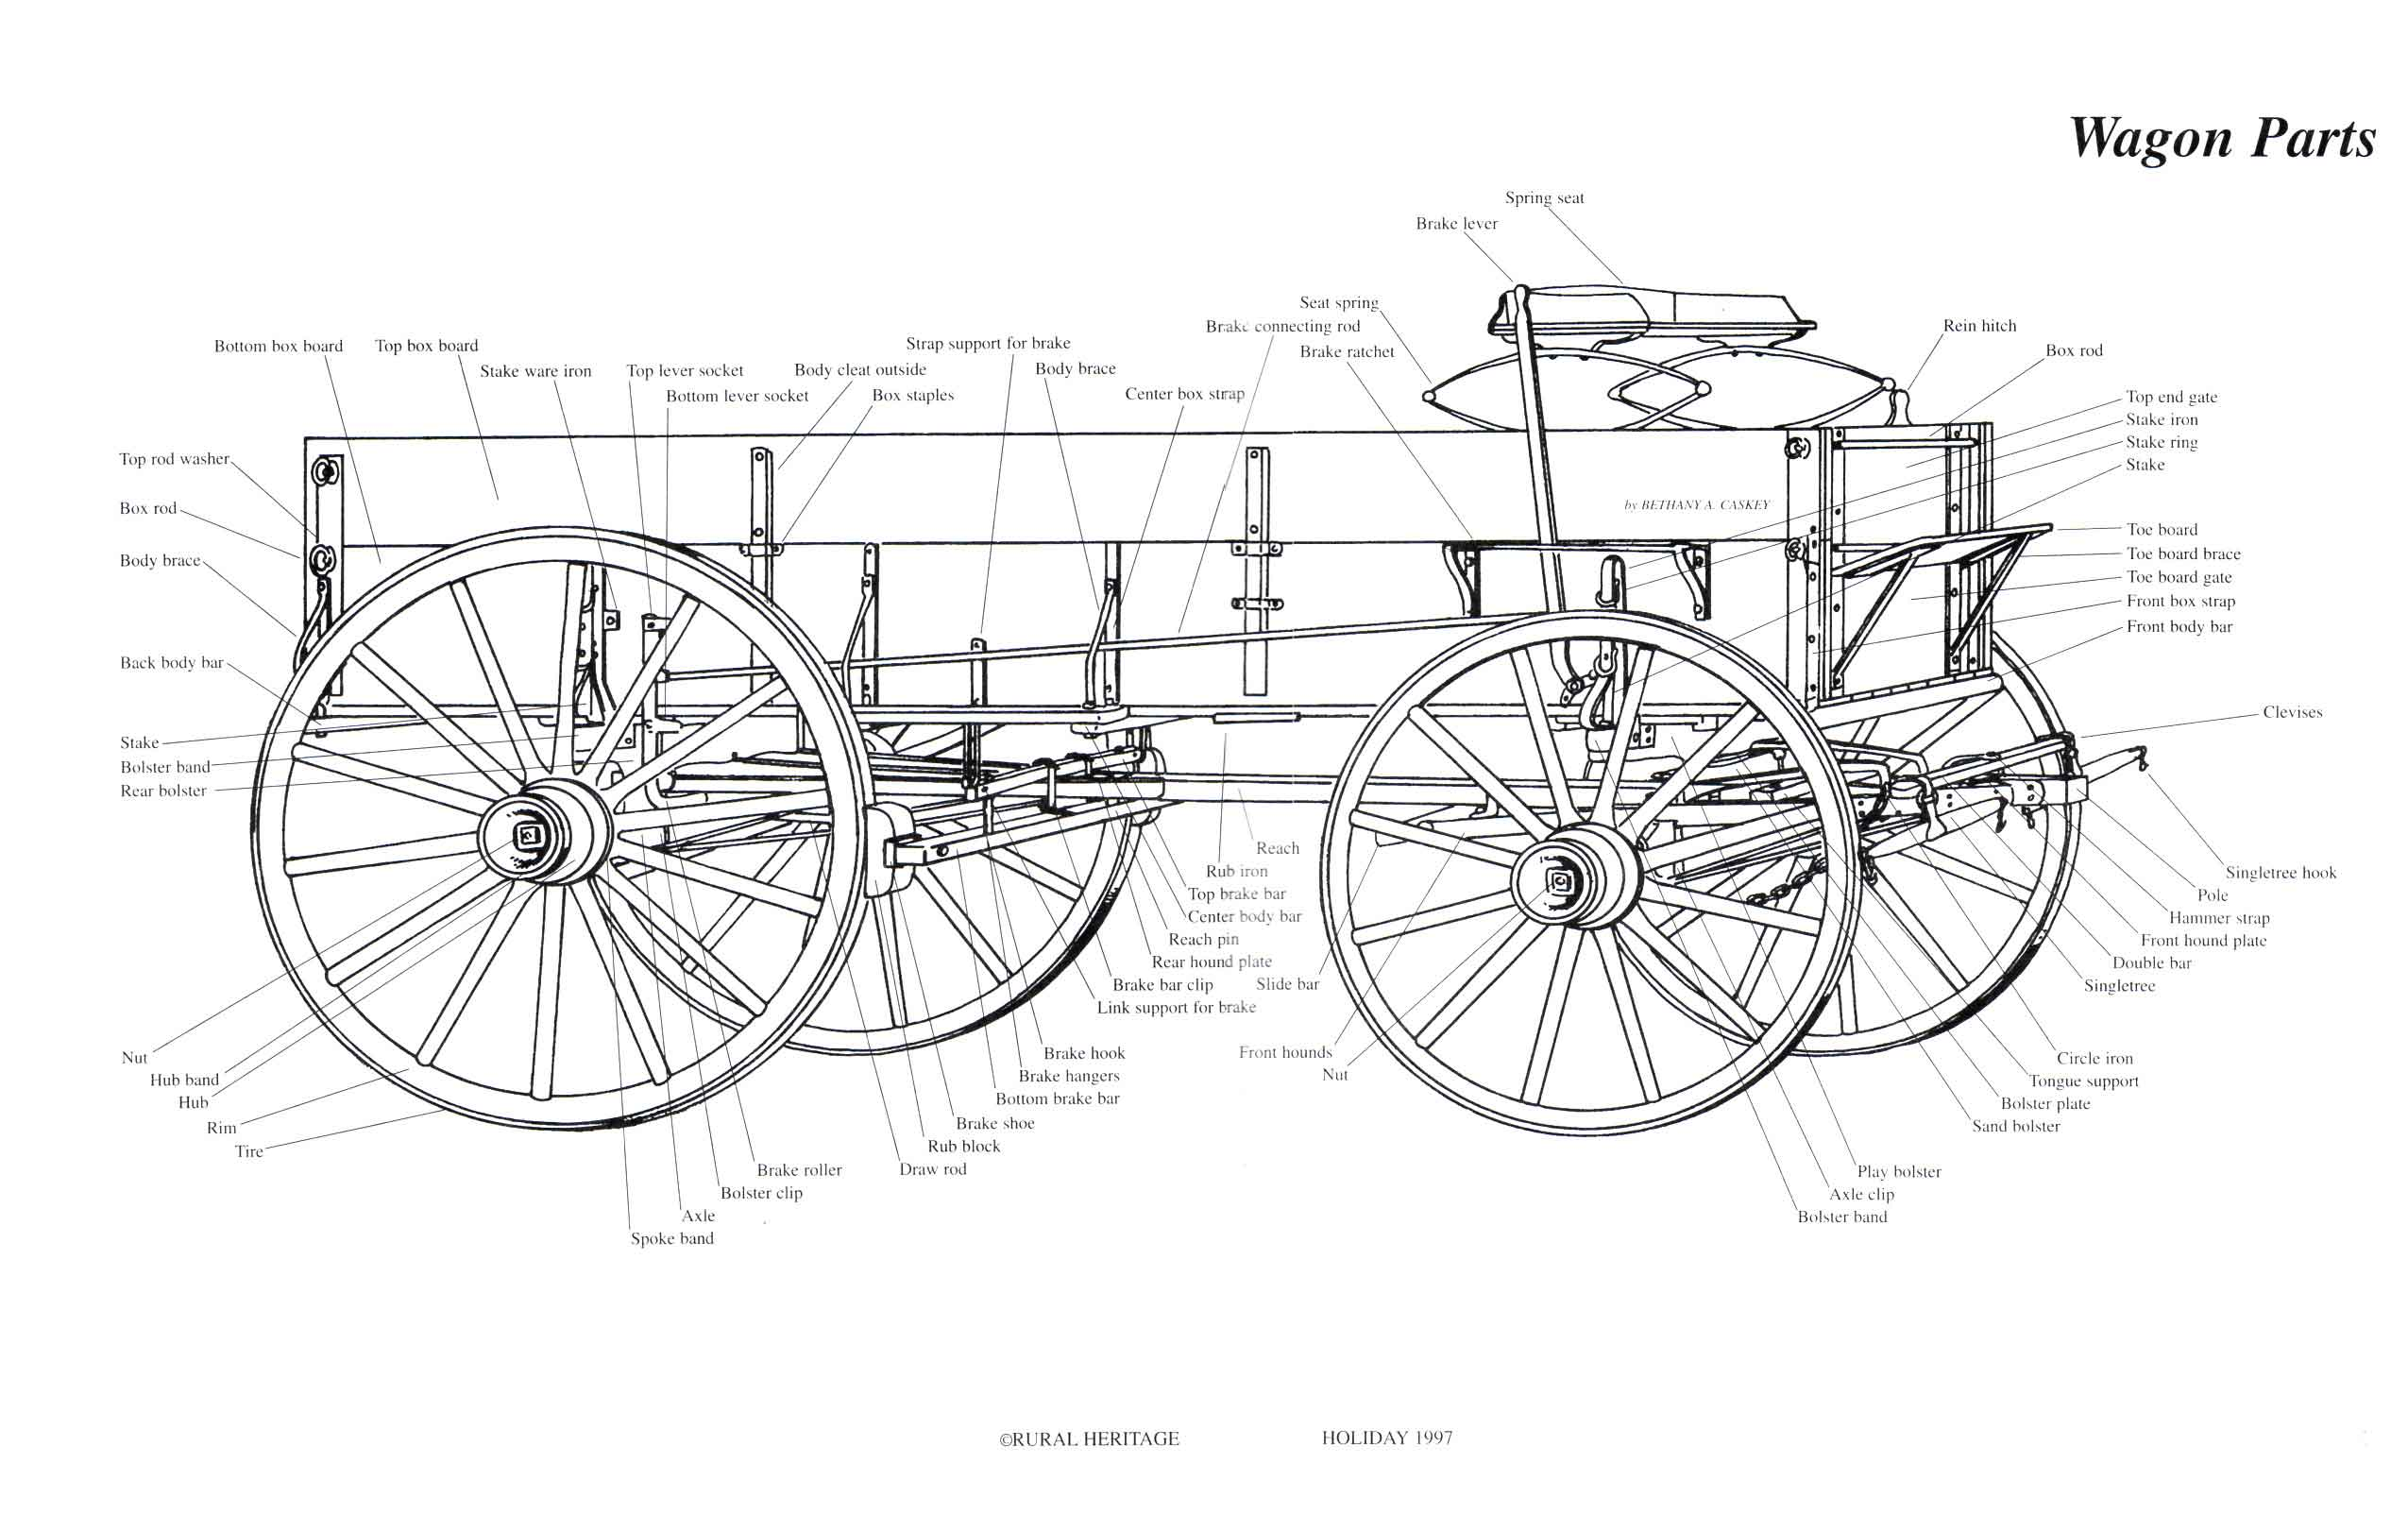 Rural Heritage Wagon Parts Illustration